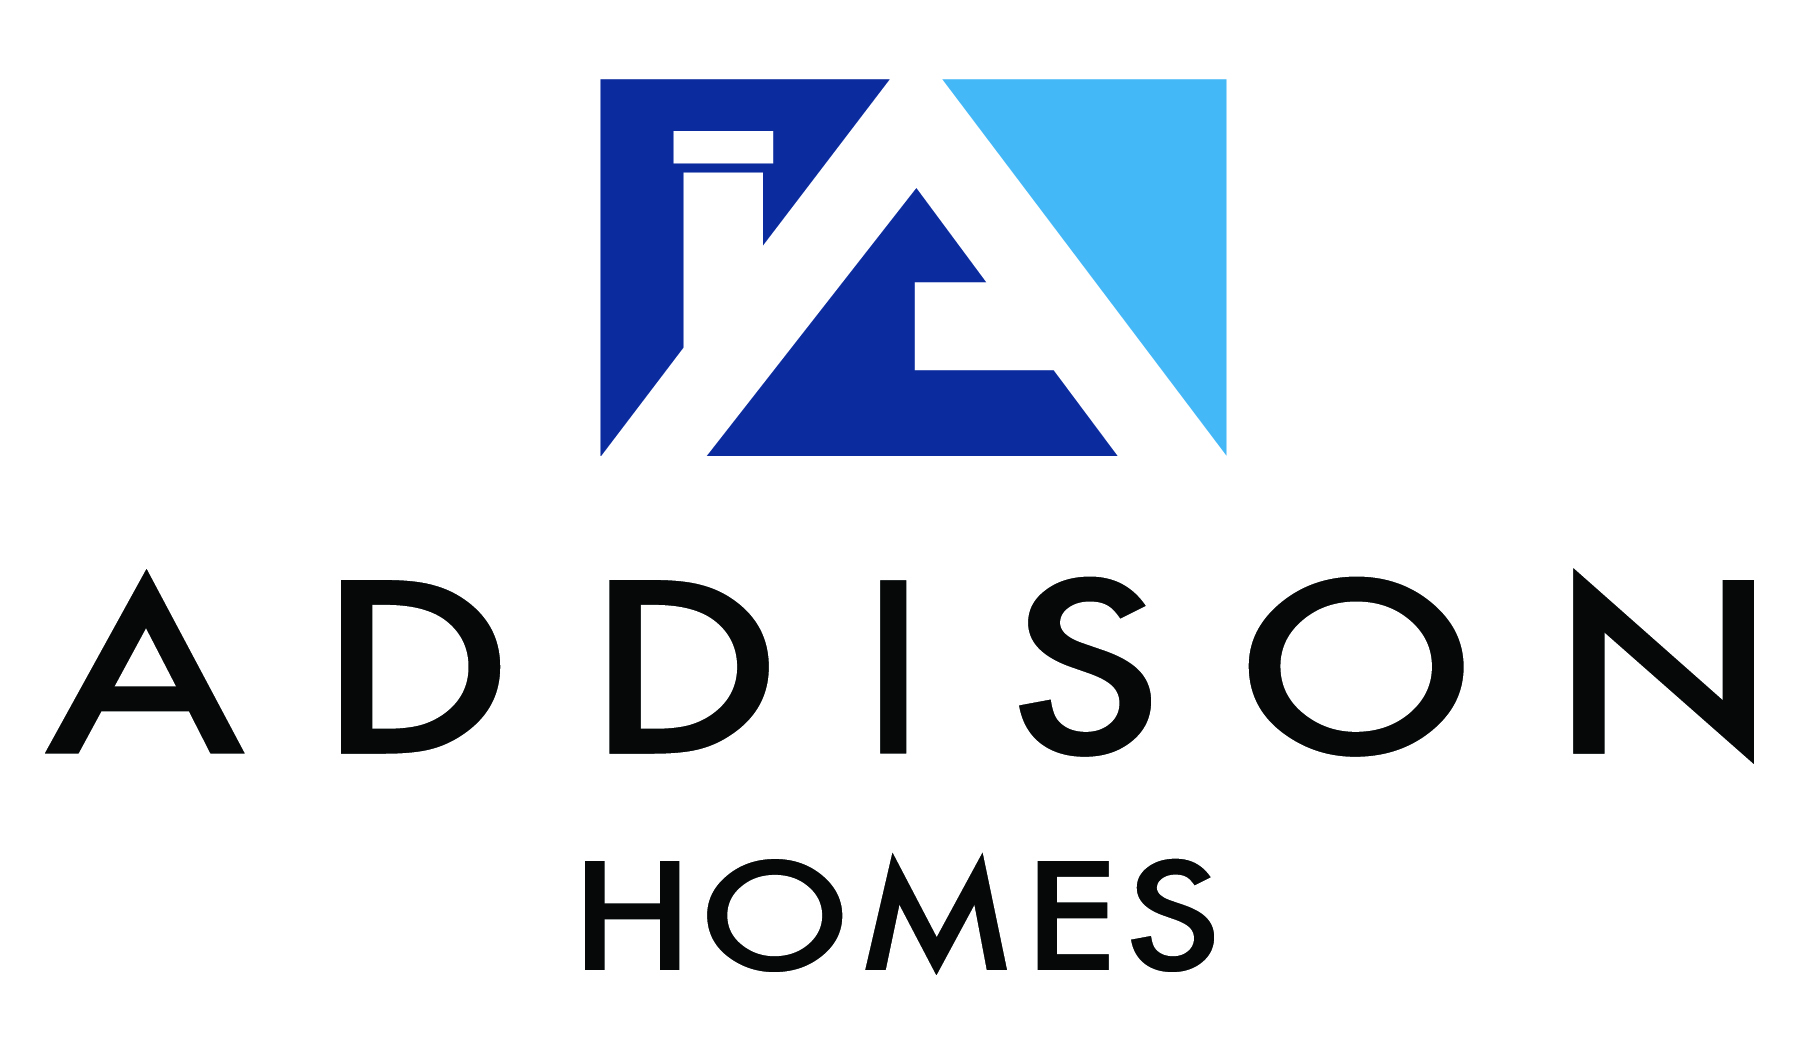 Addison Homes, LLC company logo